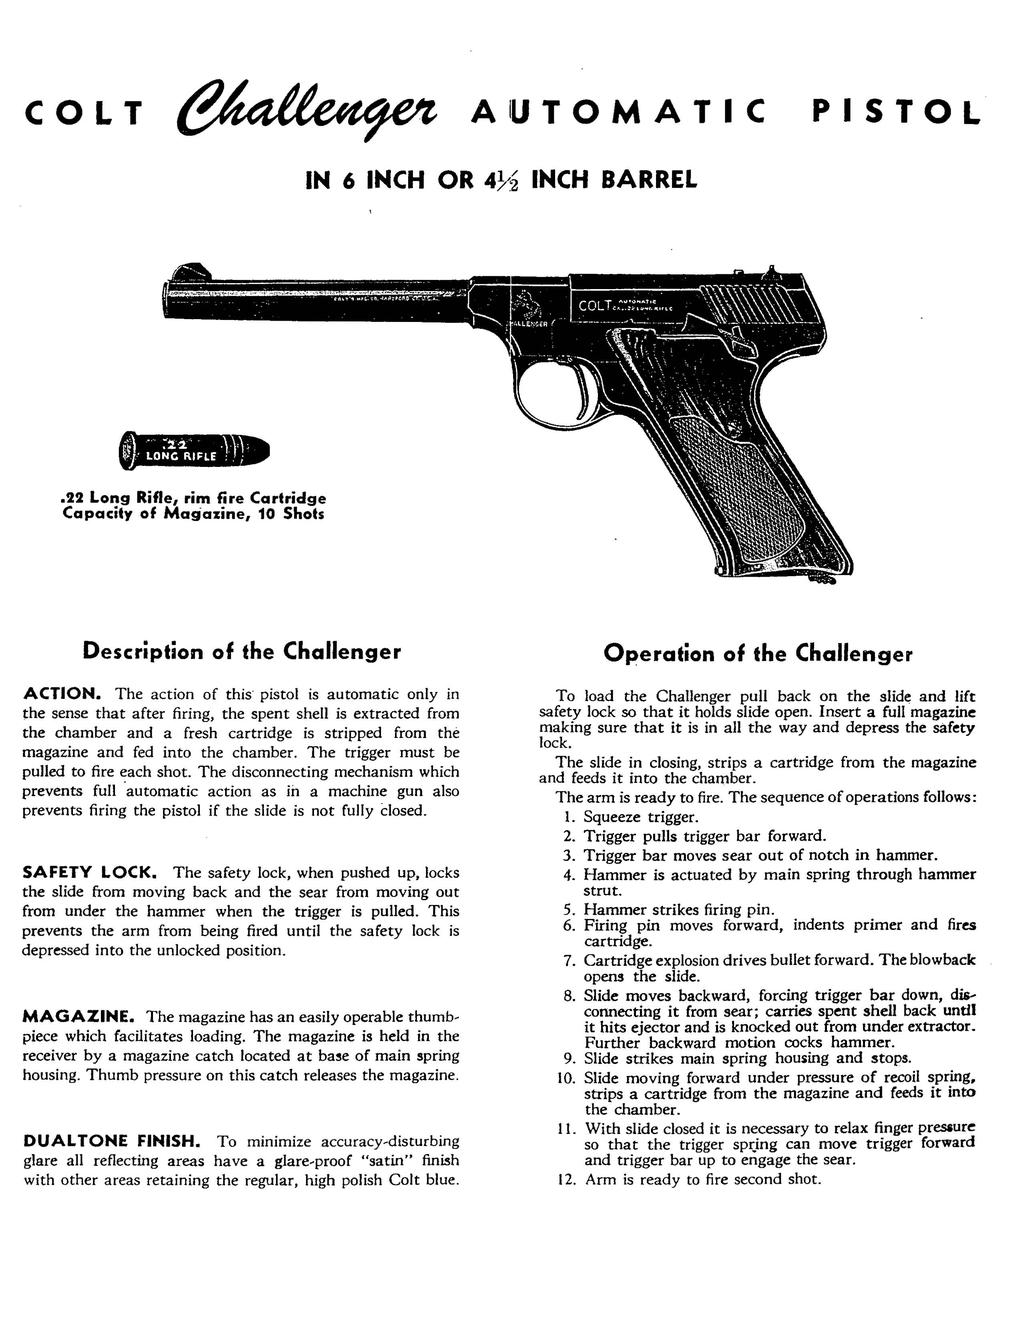 COLT AIUTOMATIC PISTOL IN 6 INCH OR 4}~2 INCH BARREL.22 Long Rifle, rim fire Cartridge Capacity of Magazine, 10 Shots Description of the Challenger ACTION.